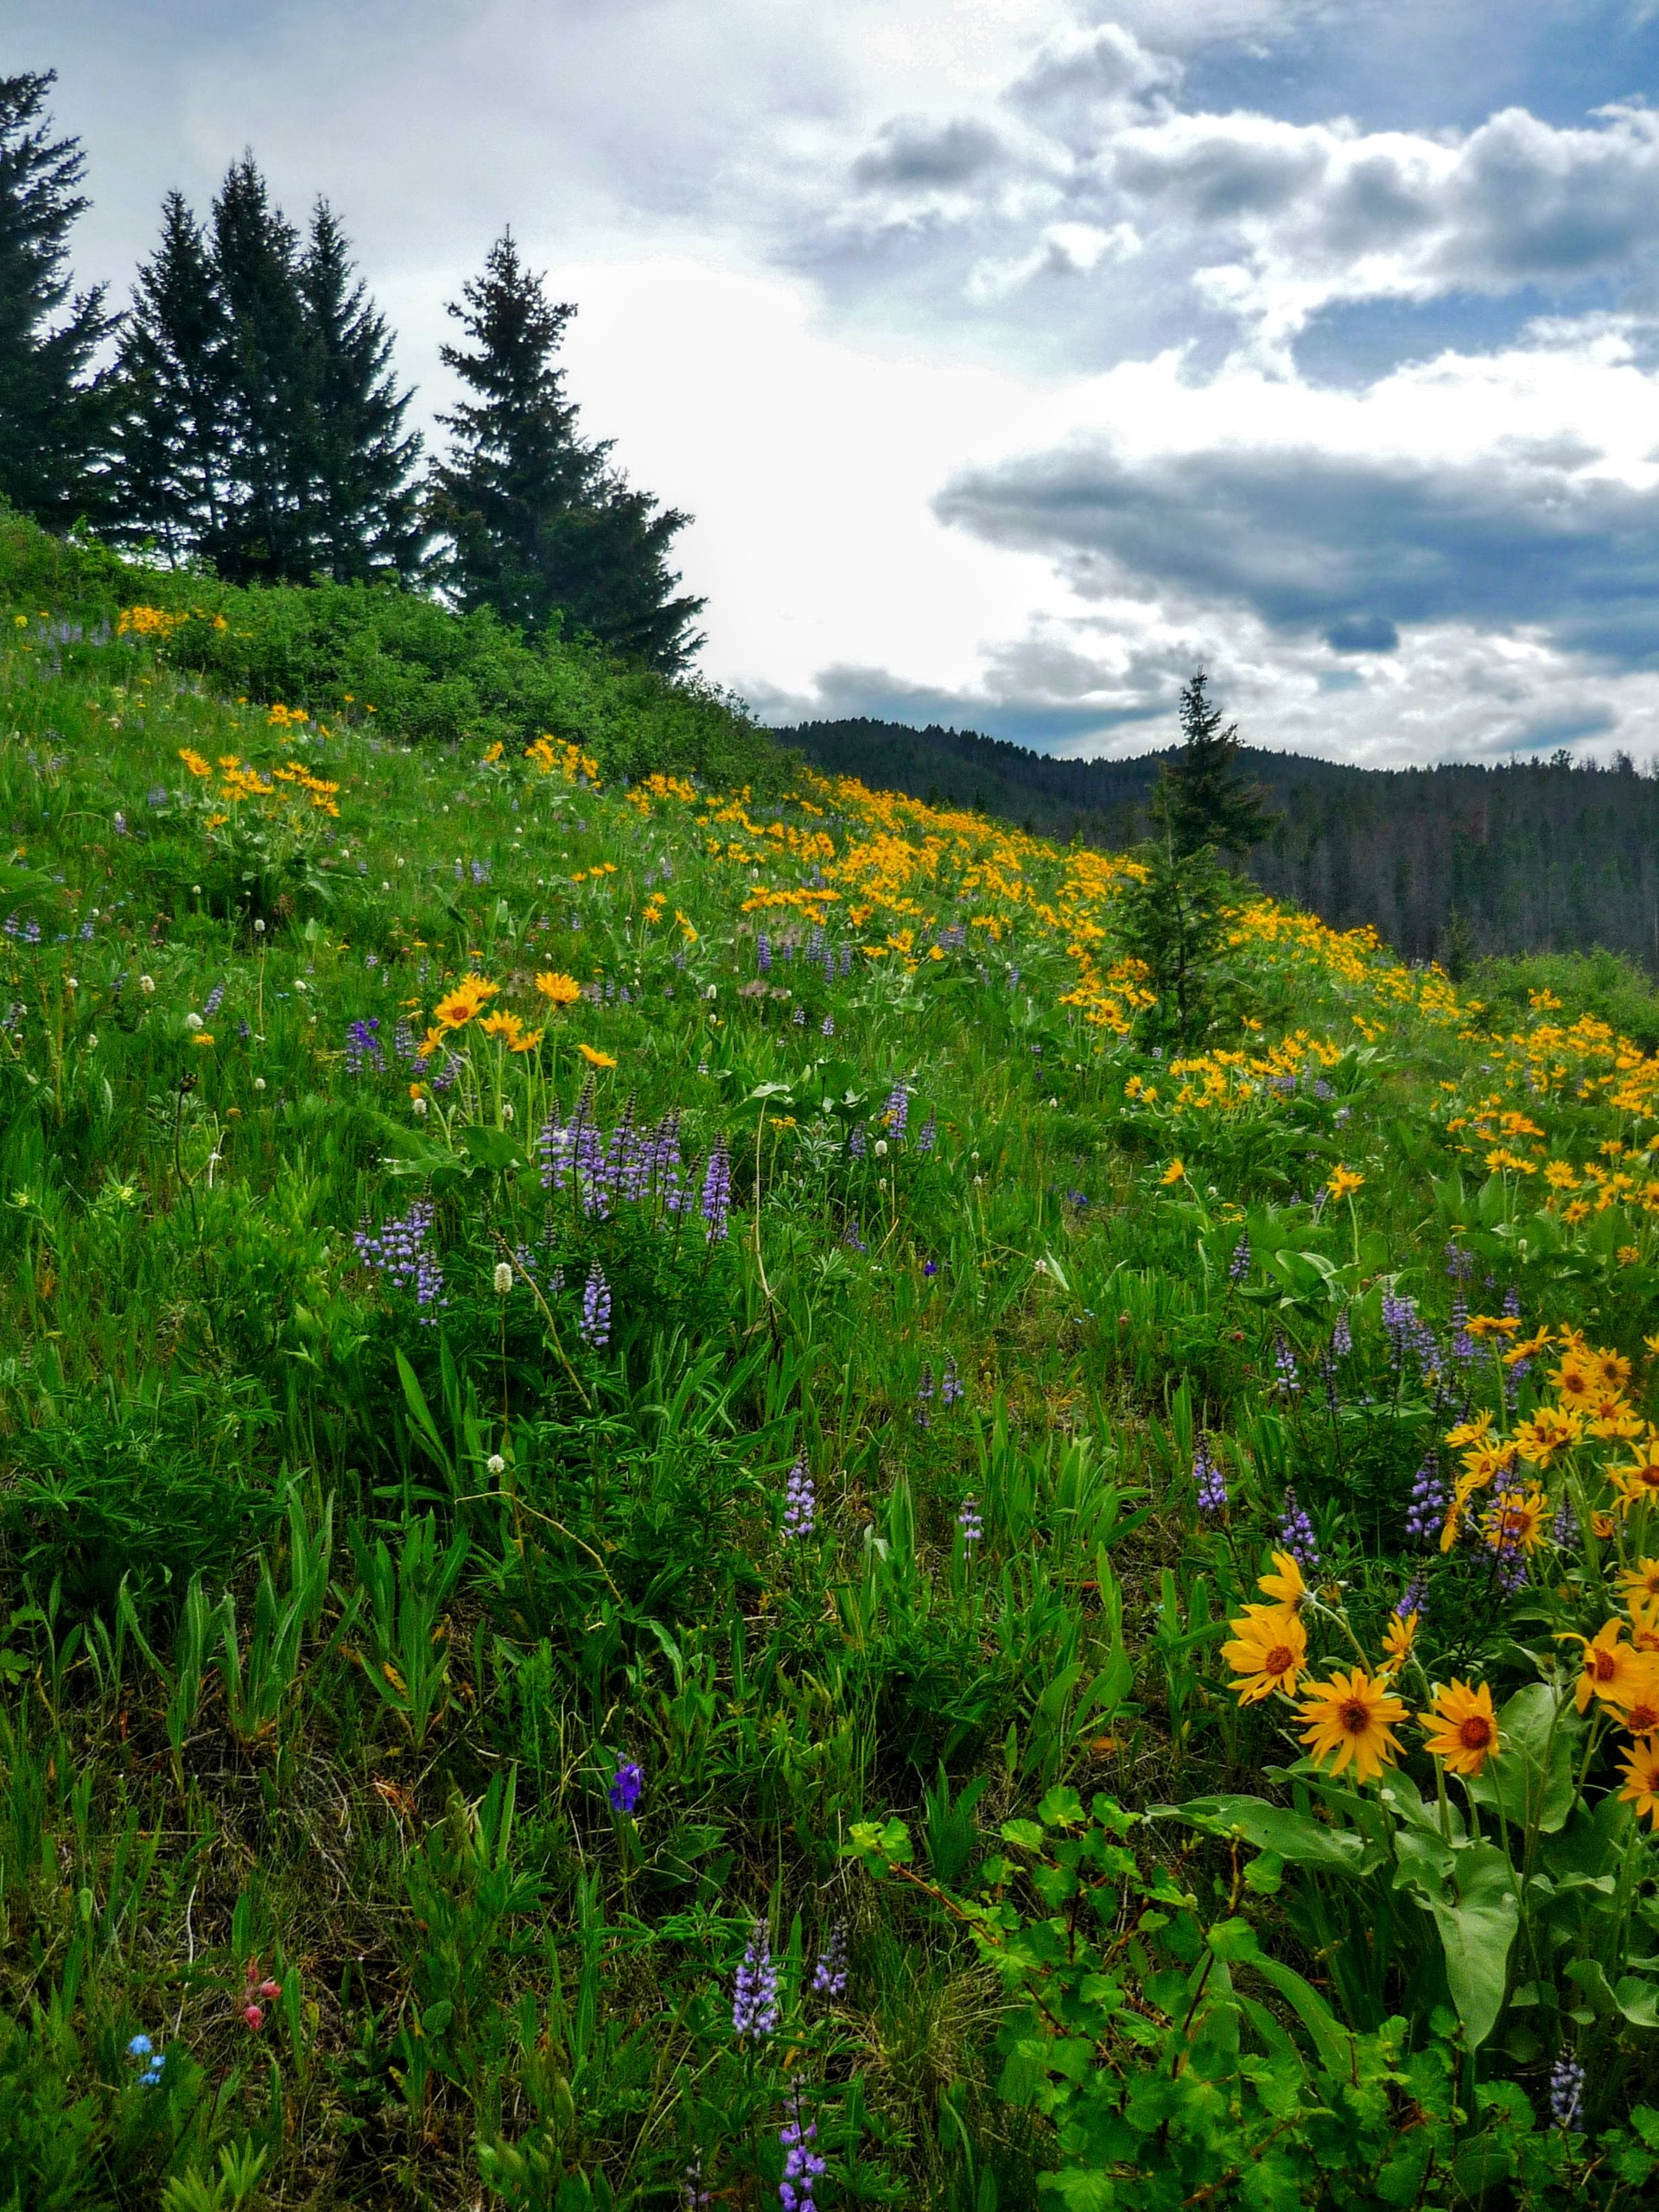 Wildflowers on hillside   nature, outdoors, photography, color image